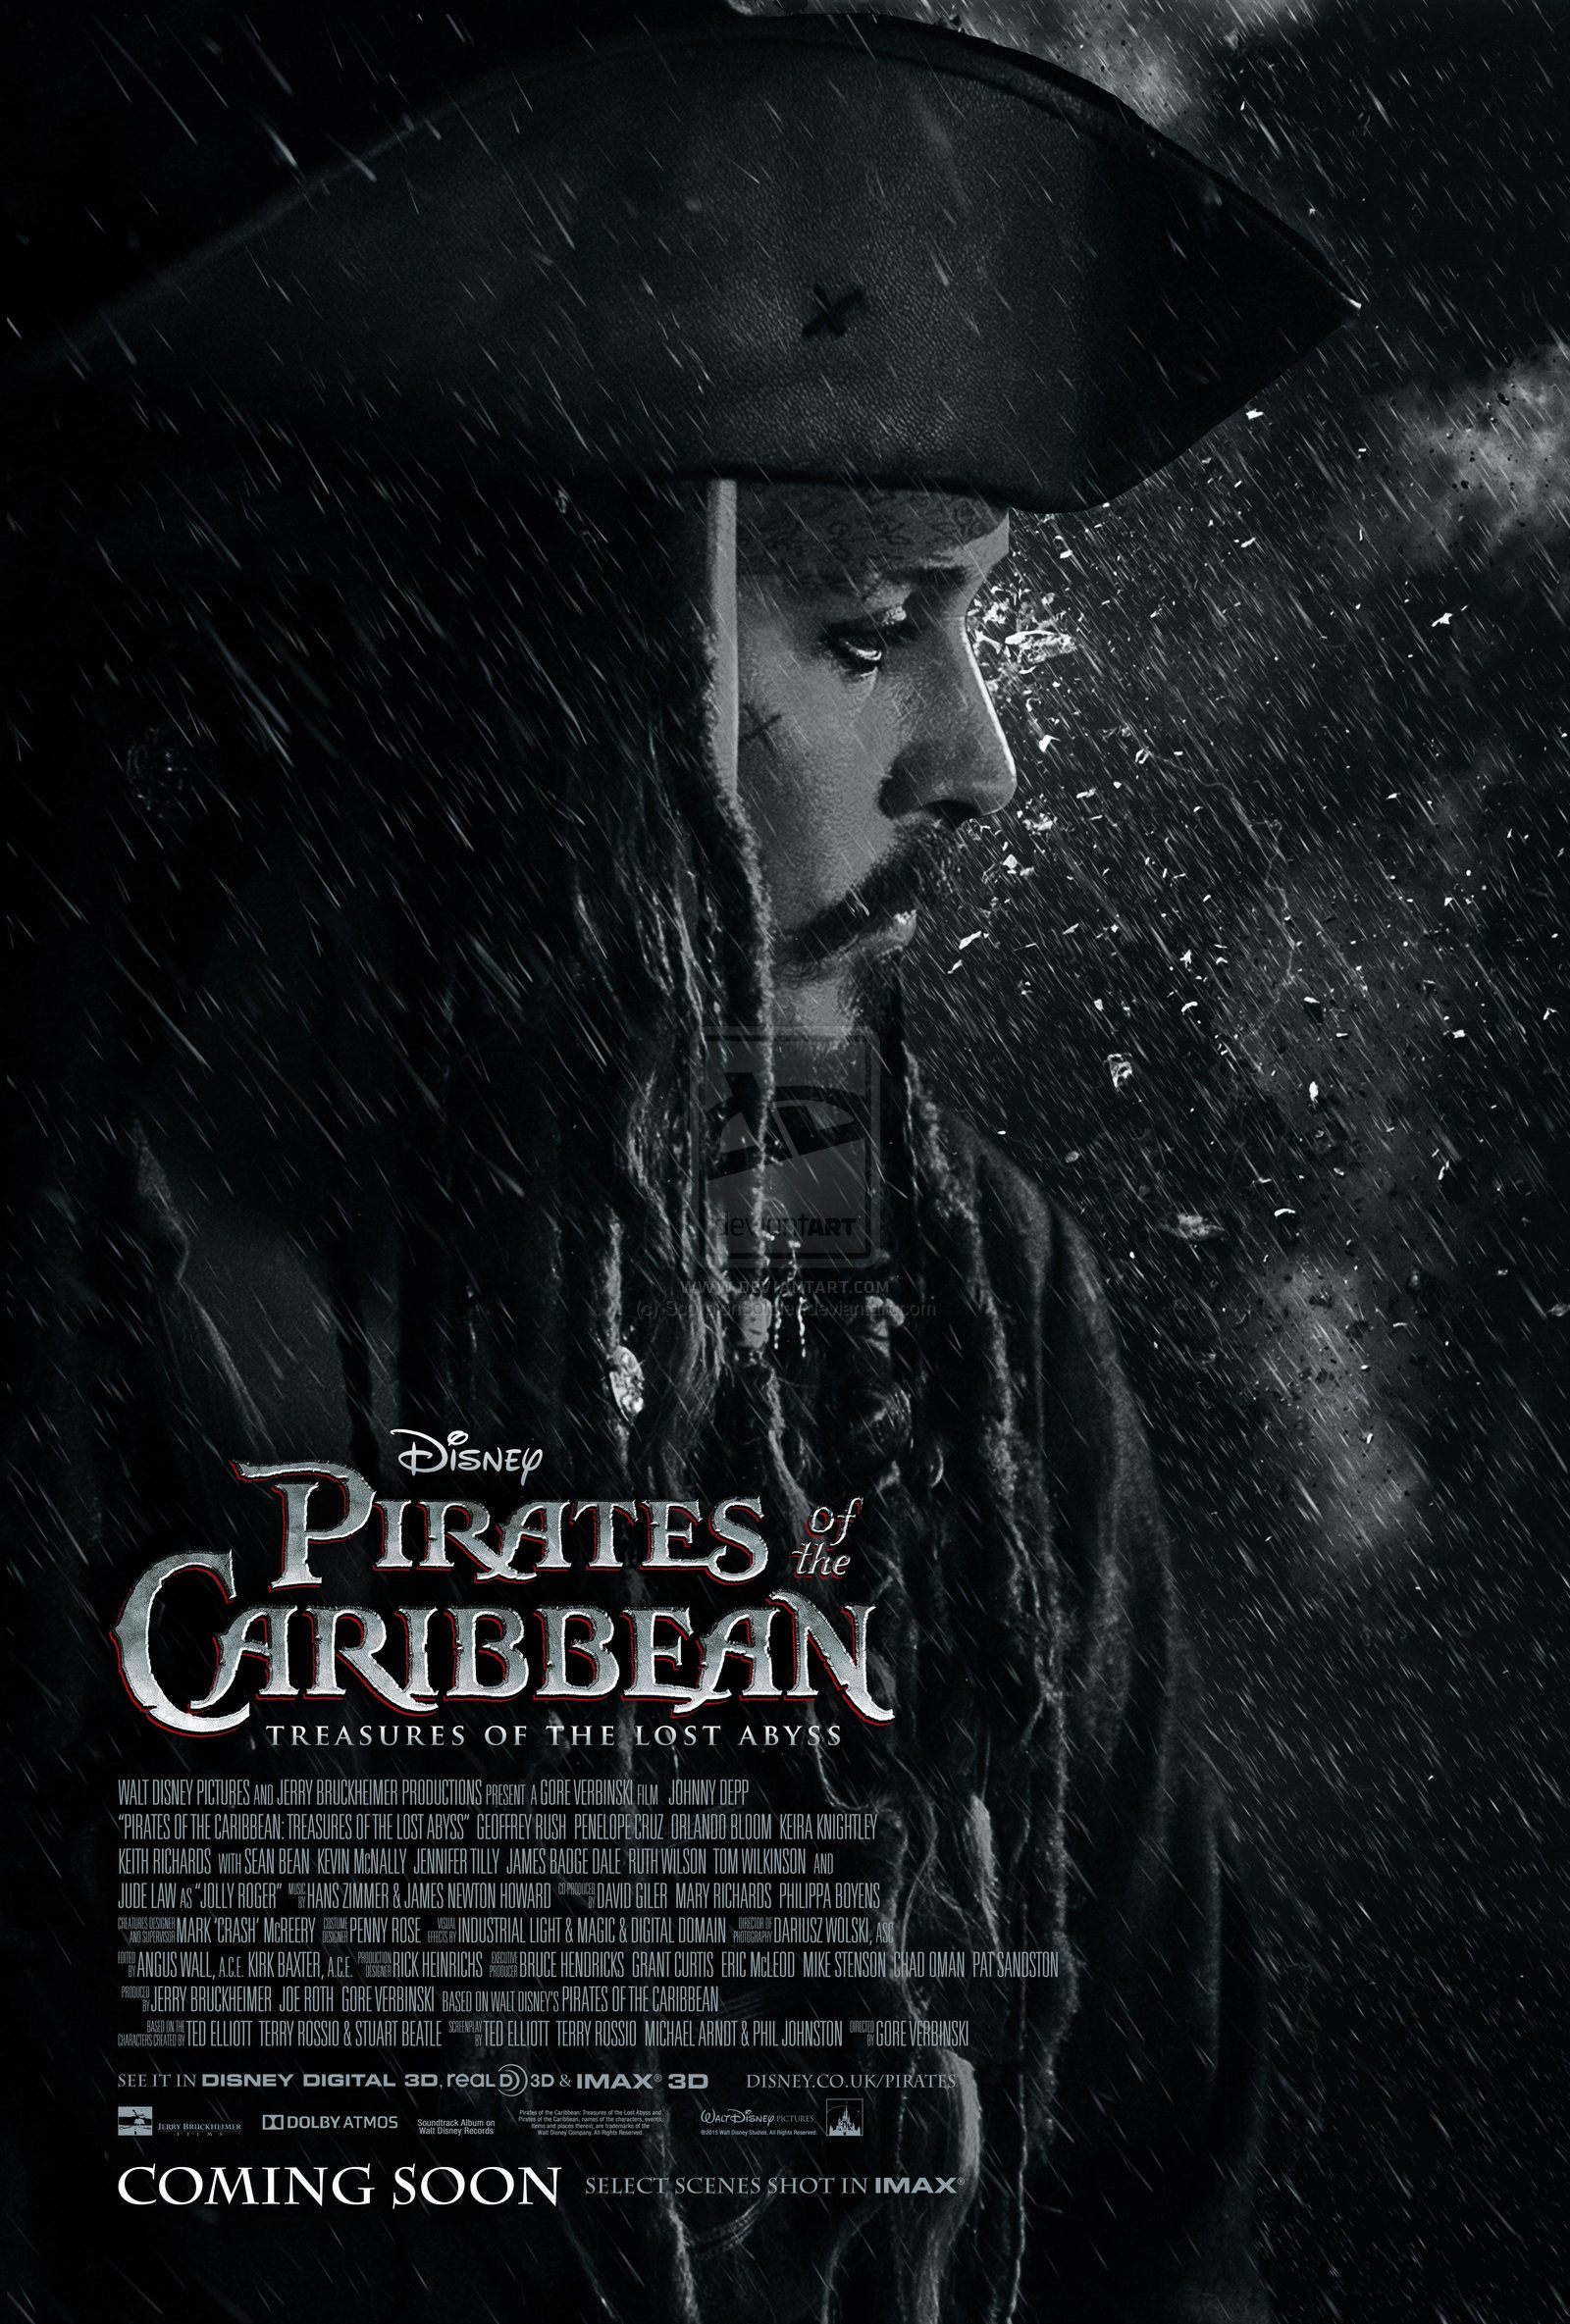 Prince of caribbean full movie download